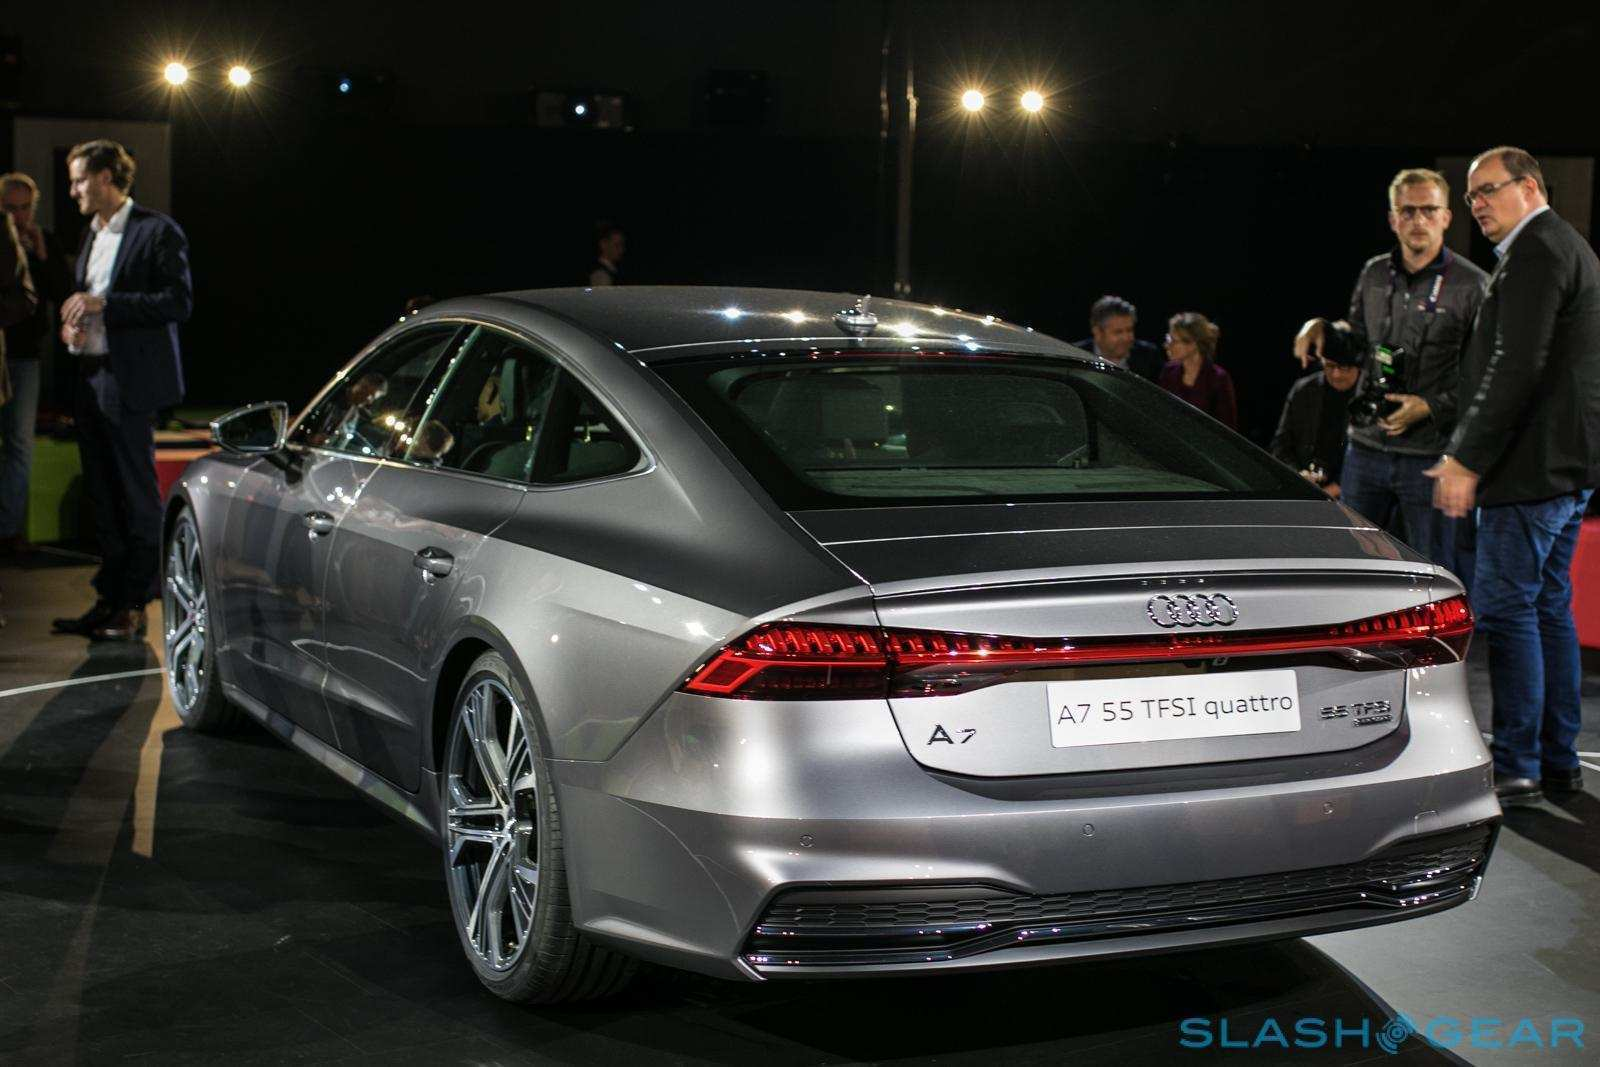 80 Gallery of 2019 Audi A7 Headlights Images with 2019 Audi A7 Headlights